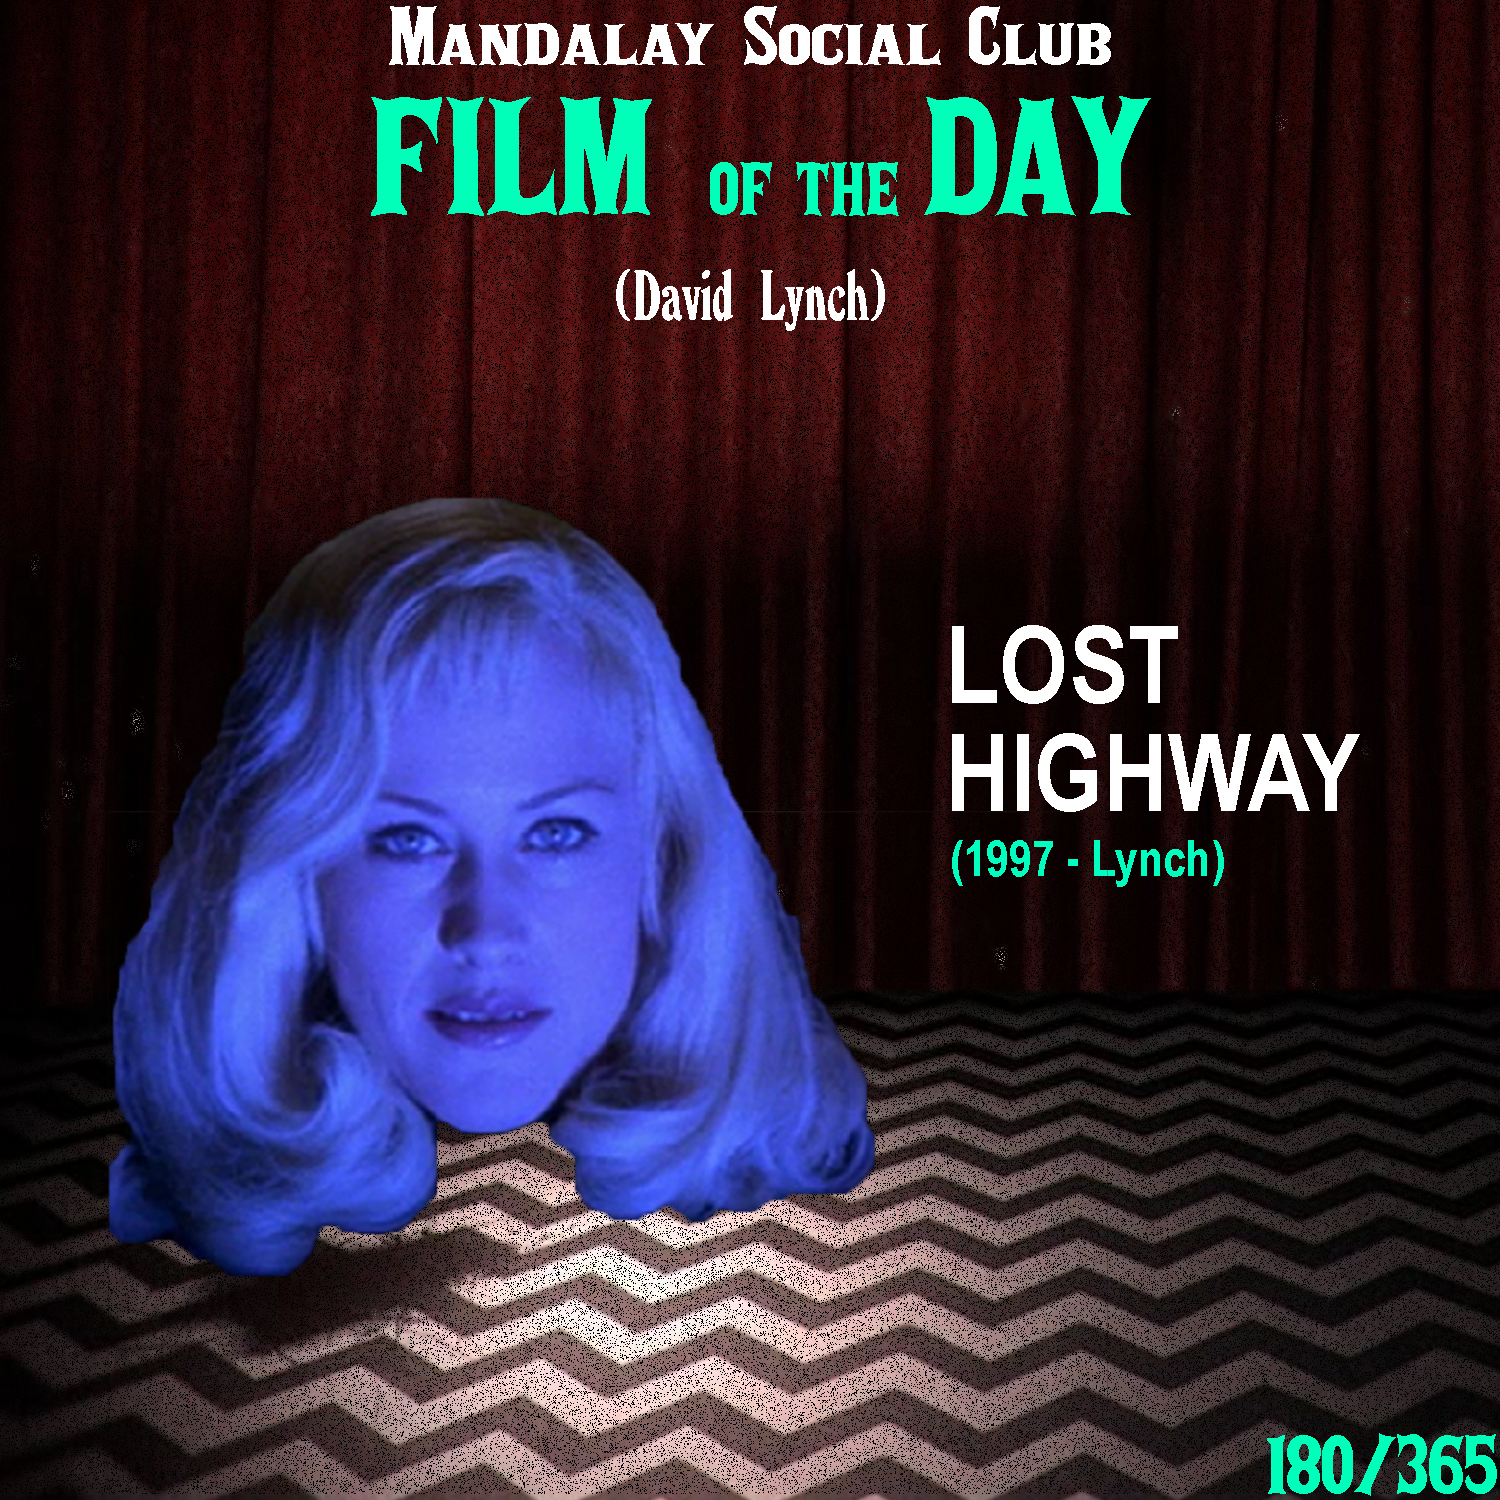 LOST HIGHWAY     (dir. David Lynch)   5 years after David closed the book on the world of Twin Peaks,  Lost Highway  introduced us to an altered world of Los Angeles that he would frequently enter over the rest of his film career.   Lost Highway  stars Bill Pullman as Fred Madison, a saxophonist who starts receiving strange video tapes in the mail that implies an intruder has been sneaking in and has been filming him and his wife, played by Patricia Arquette. The final tape that Fred receives shows him killing his own wife which leads to prison time followed by a death sentence. However, while in his cell Fred transforms into a 24 year old mechanic named Pete. Pete is then released from prison where he meets a doppelgänger version of Fred's wife named Alice, who leads him further into the mysteriously convoluted world of  Lost Highway .  This, like most of Lynch's films take time to grow on you and it wasn't until my third viewing of  Lost Highway  that I truly enjoyed it.  Lost Highway  introduced a lot of tropes that would become apart of Lynch's vision including the use of doppelgängers and the use of LA as a surreal wasteland of mystery. At many points,  Lost Highway  feels a lot like a rough draft of David's 2001 masterpiece  Mulholland Dr  and it's clear that many of the ideas swirling around in his head for  Mulholland  presented themselves during the making of this film.  With plenty of allusions to Robert Aldrich's 1955 noir  Kiss Me Deadly , Lynch creates a nightmarish tale about infidelity, paranoia, and the struggle of coming to terms with the choices you make. Behind  Blue Velvet  and  Mulholland Dr ,  Lost Highway  truly is one of the quintessential Lynchian films!    4.5/5     WATCH: Putlocker (FREE), iTunes (RENT)